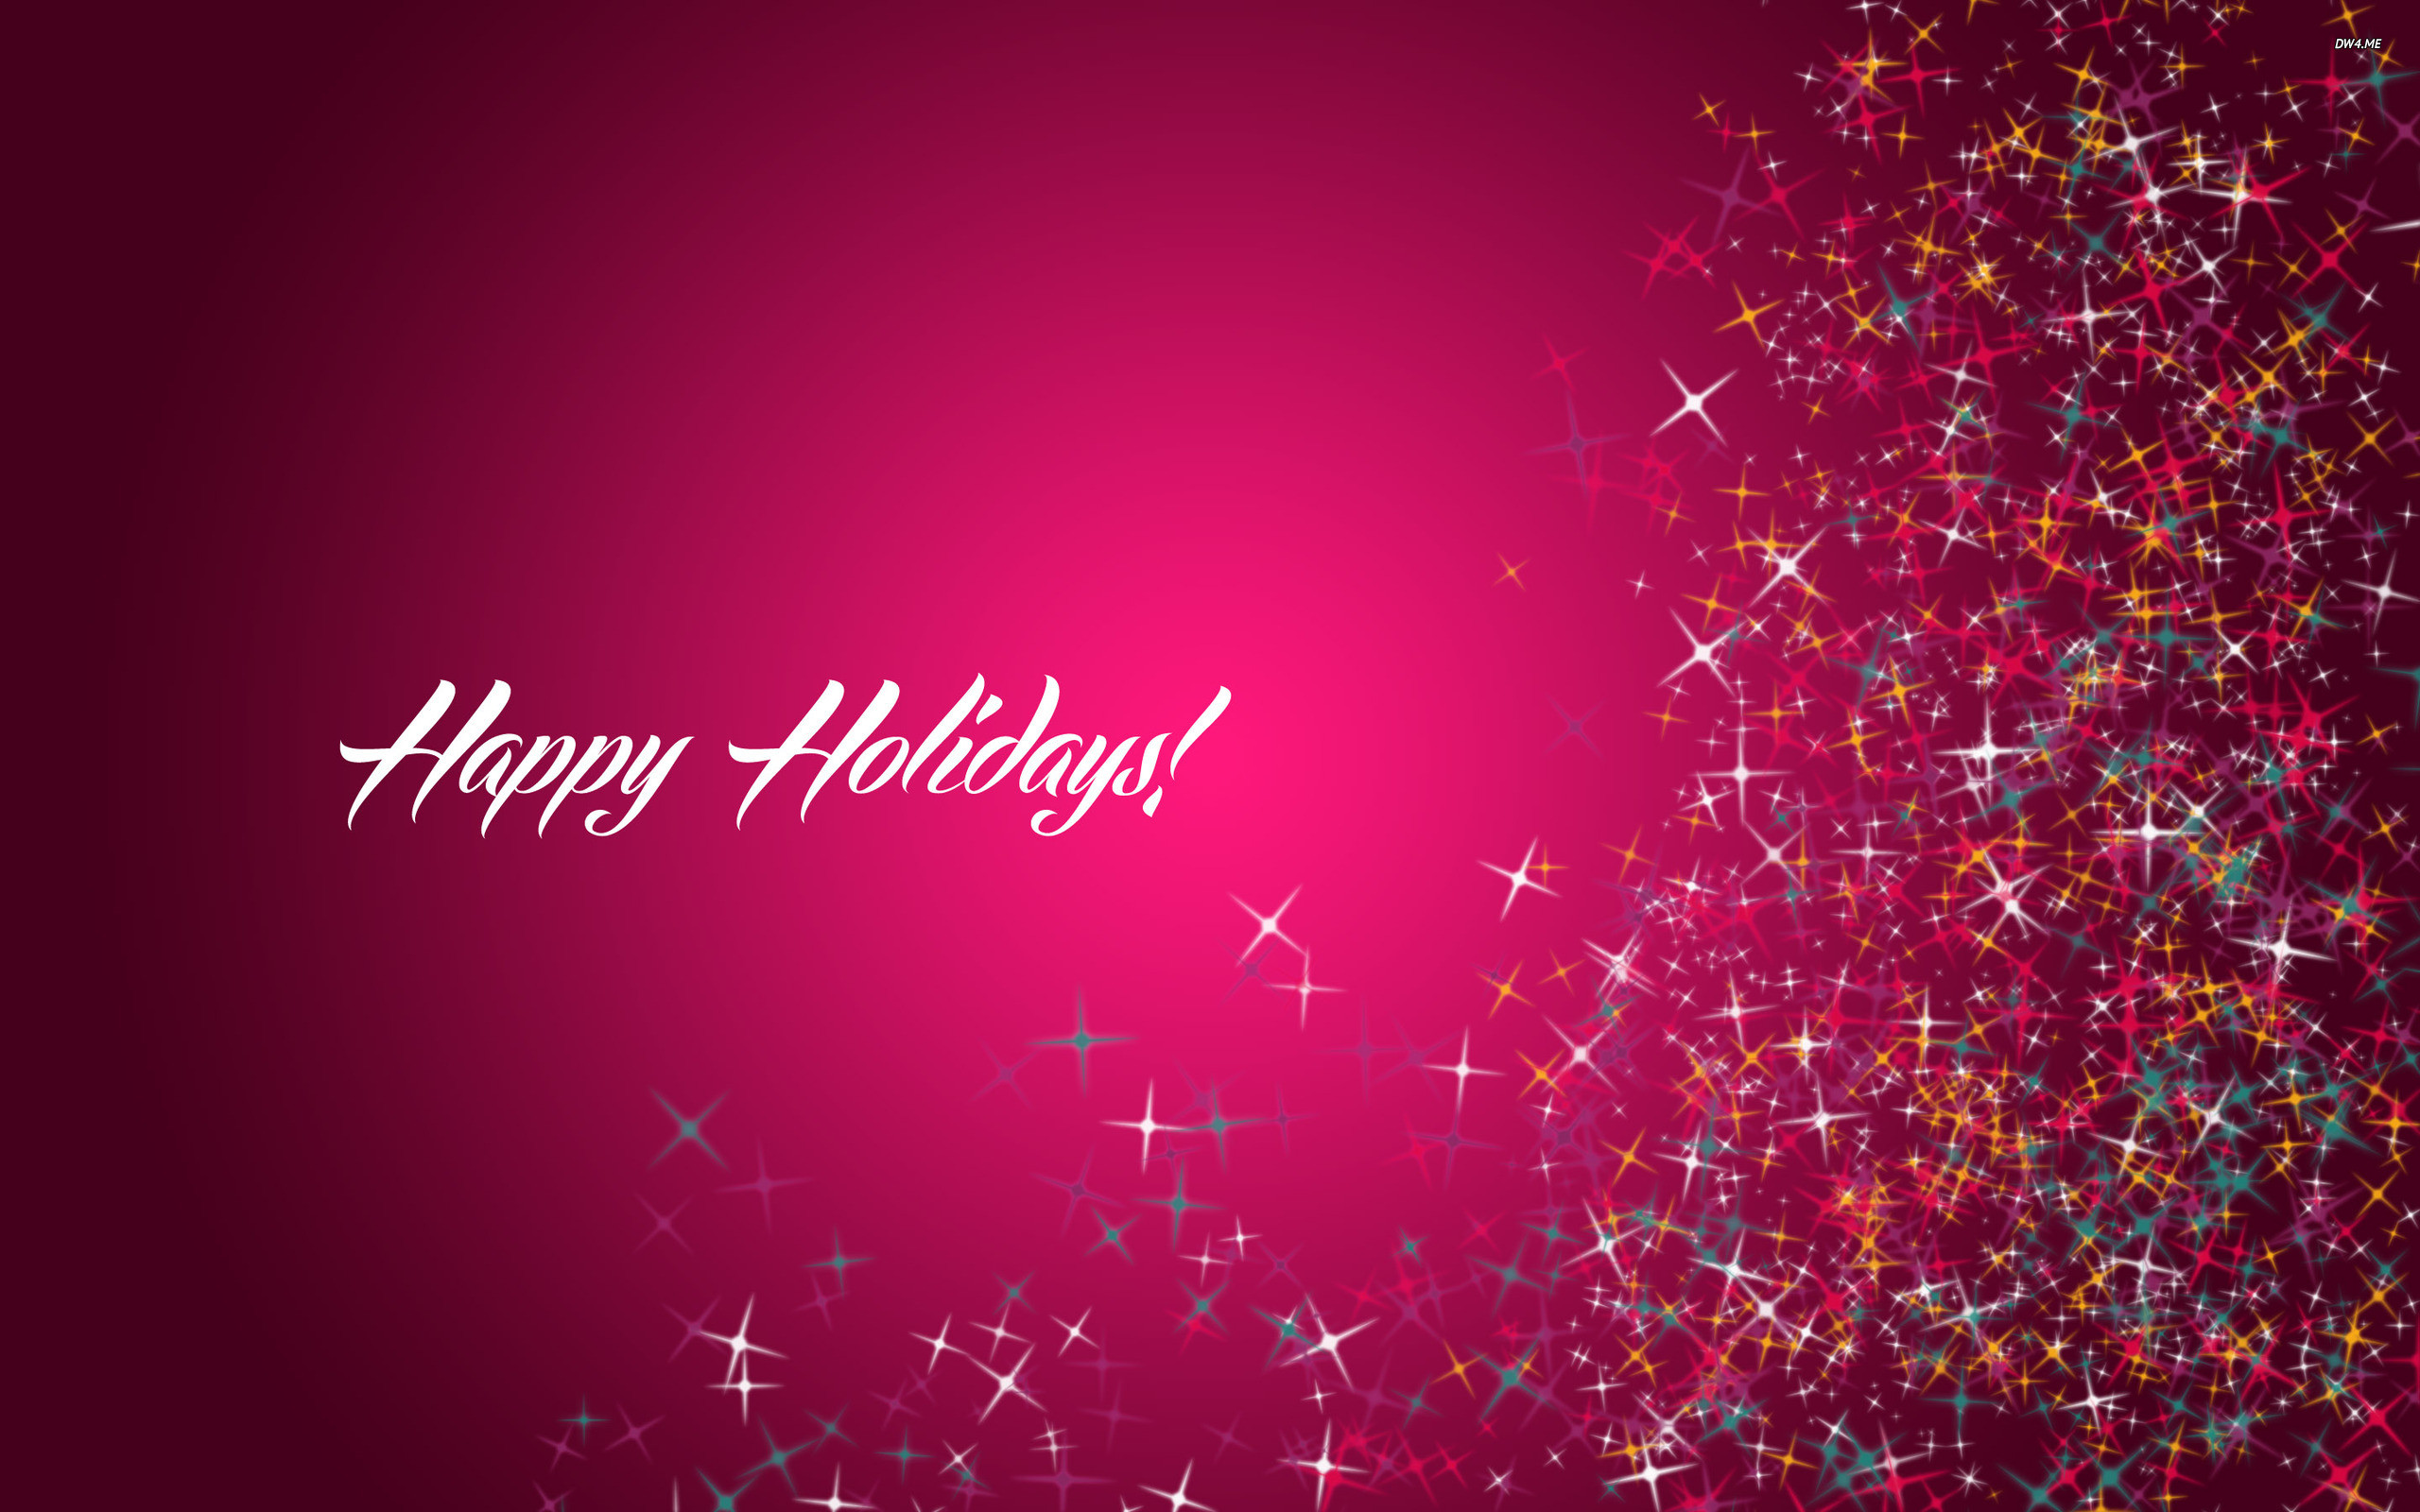 Happy Holidays Background 37 images